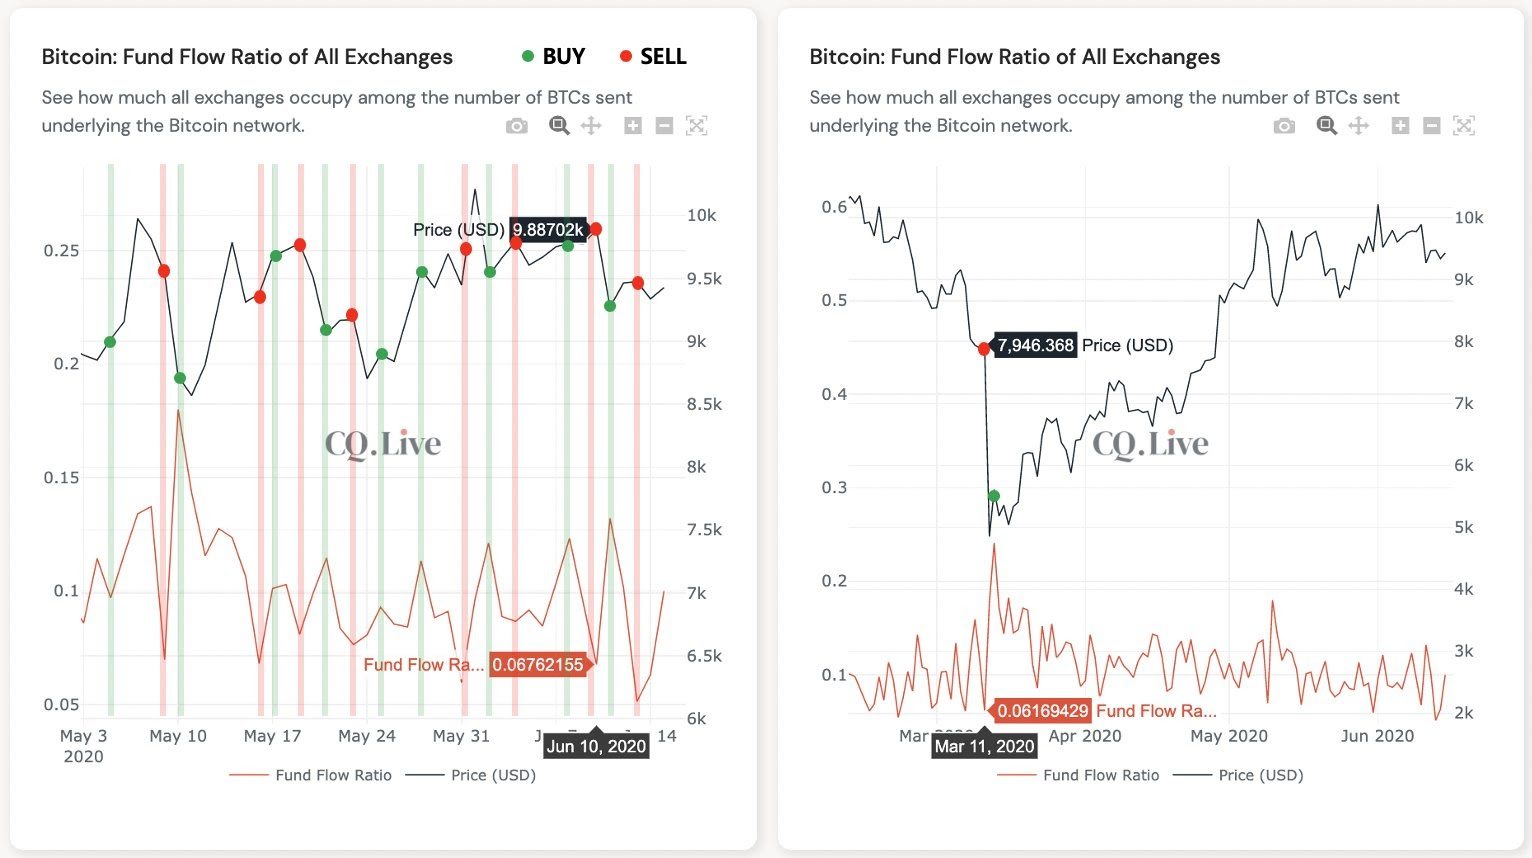 Bitcoin exchange fund flow ratio